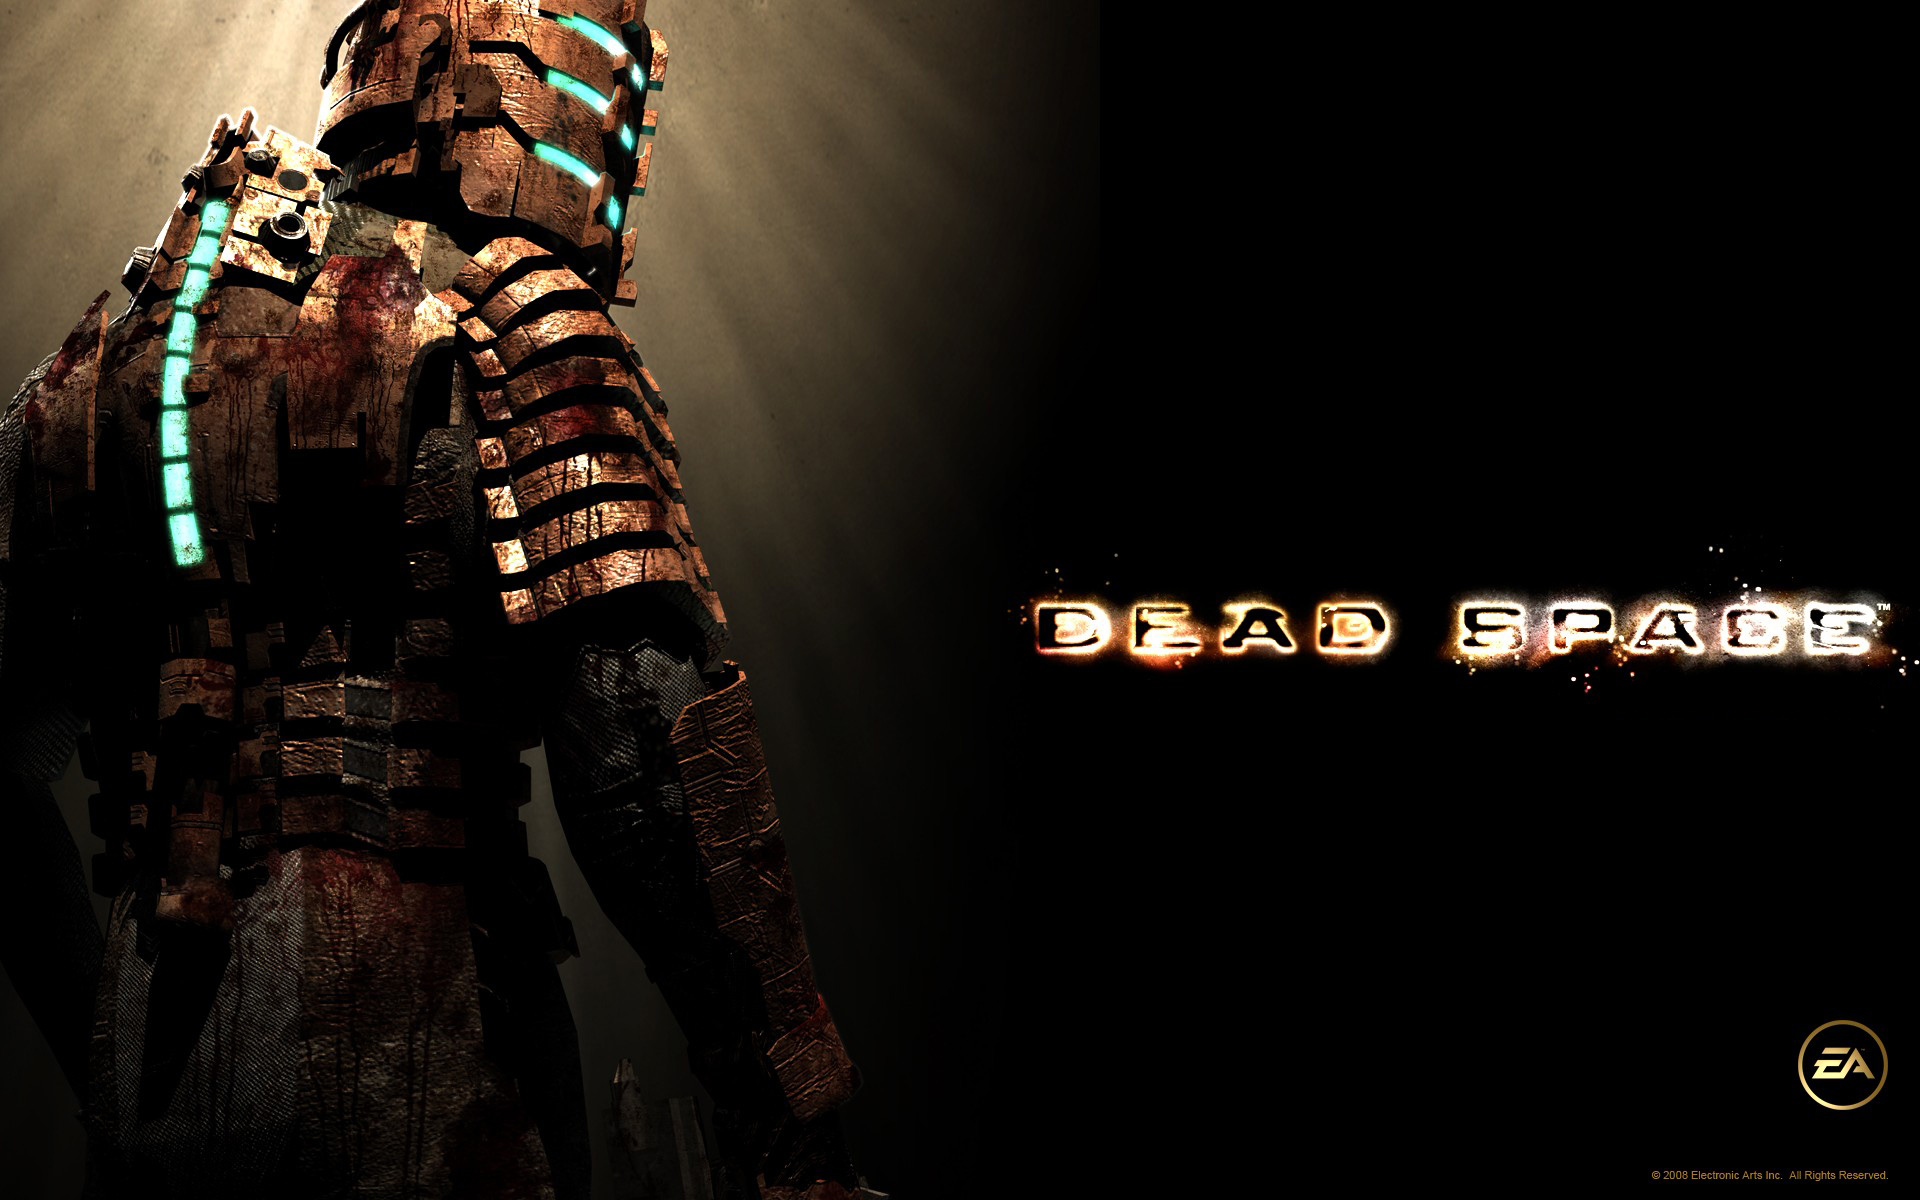 Dead Space Wallpaper Pack file - Mod DB